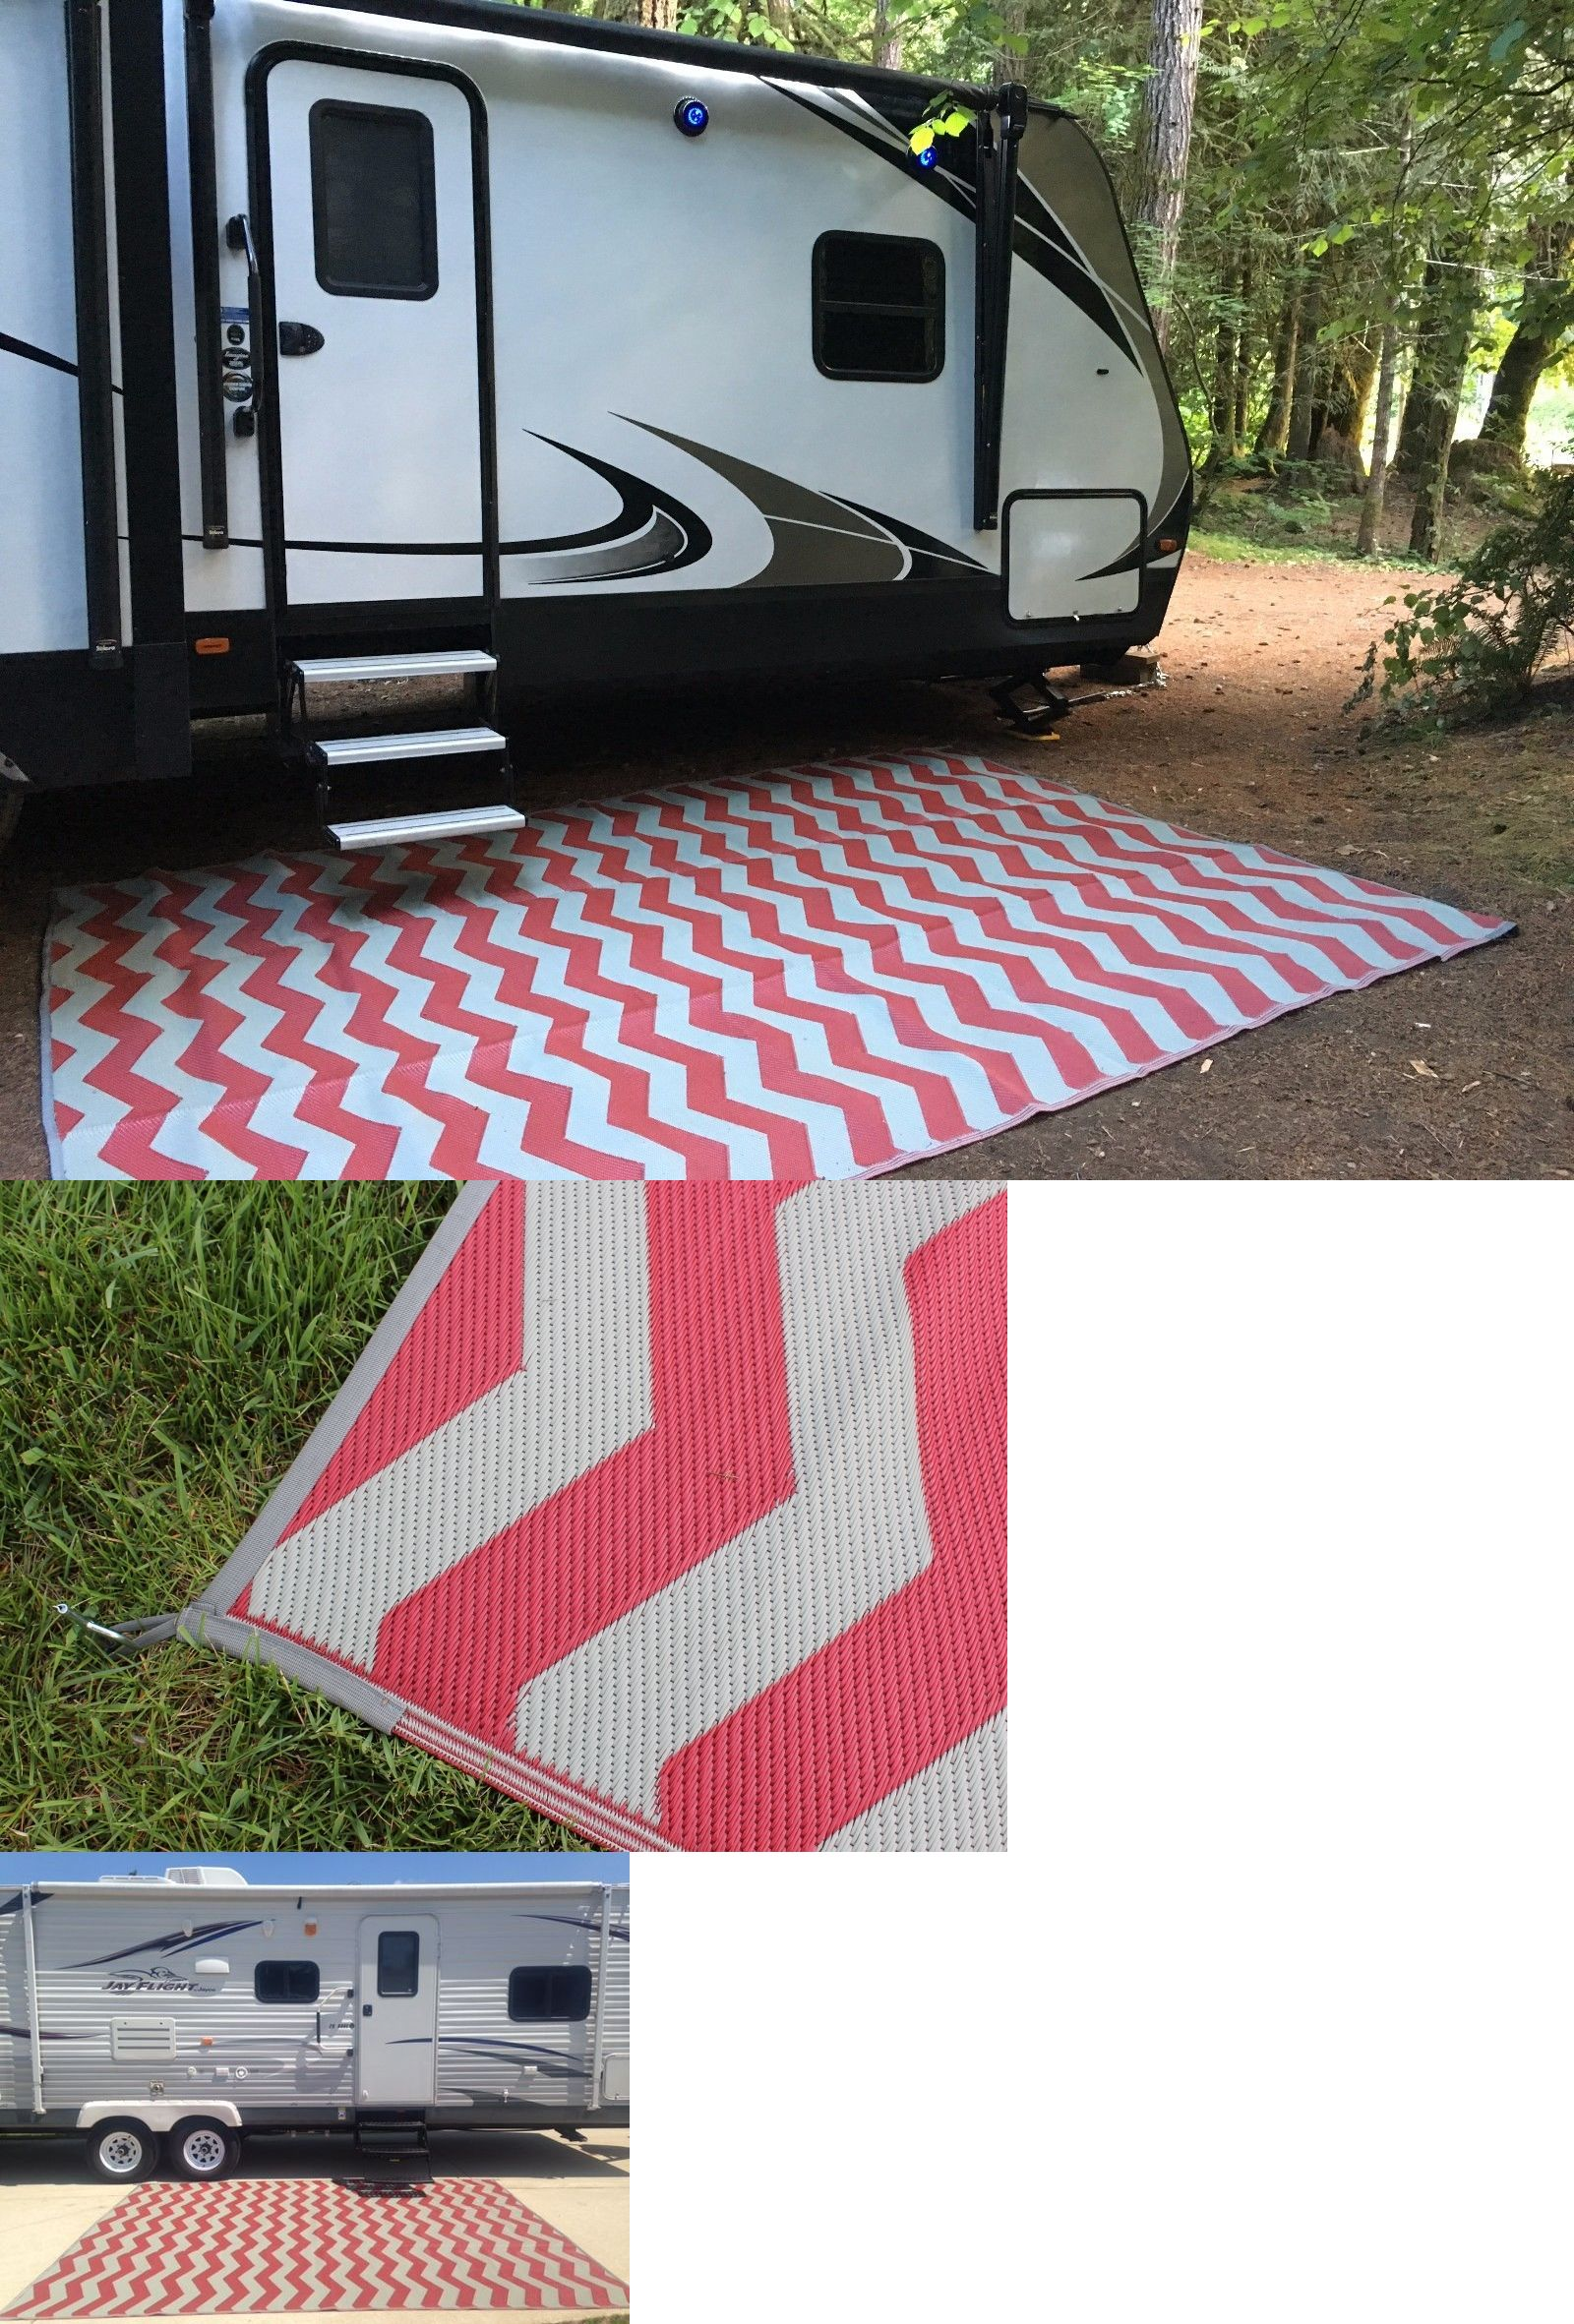 Other Rugs And Carpets 8409 Rv Patio Rug Outdoor Camping Mat Chevron Pattern 9x12 Buy It Now Only 55 Camping Rug Outdoor Rugs Cheap Outdoor Camping Rugs